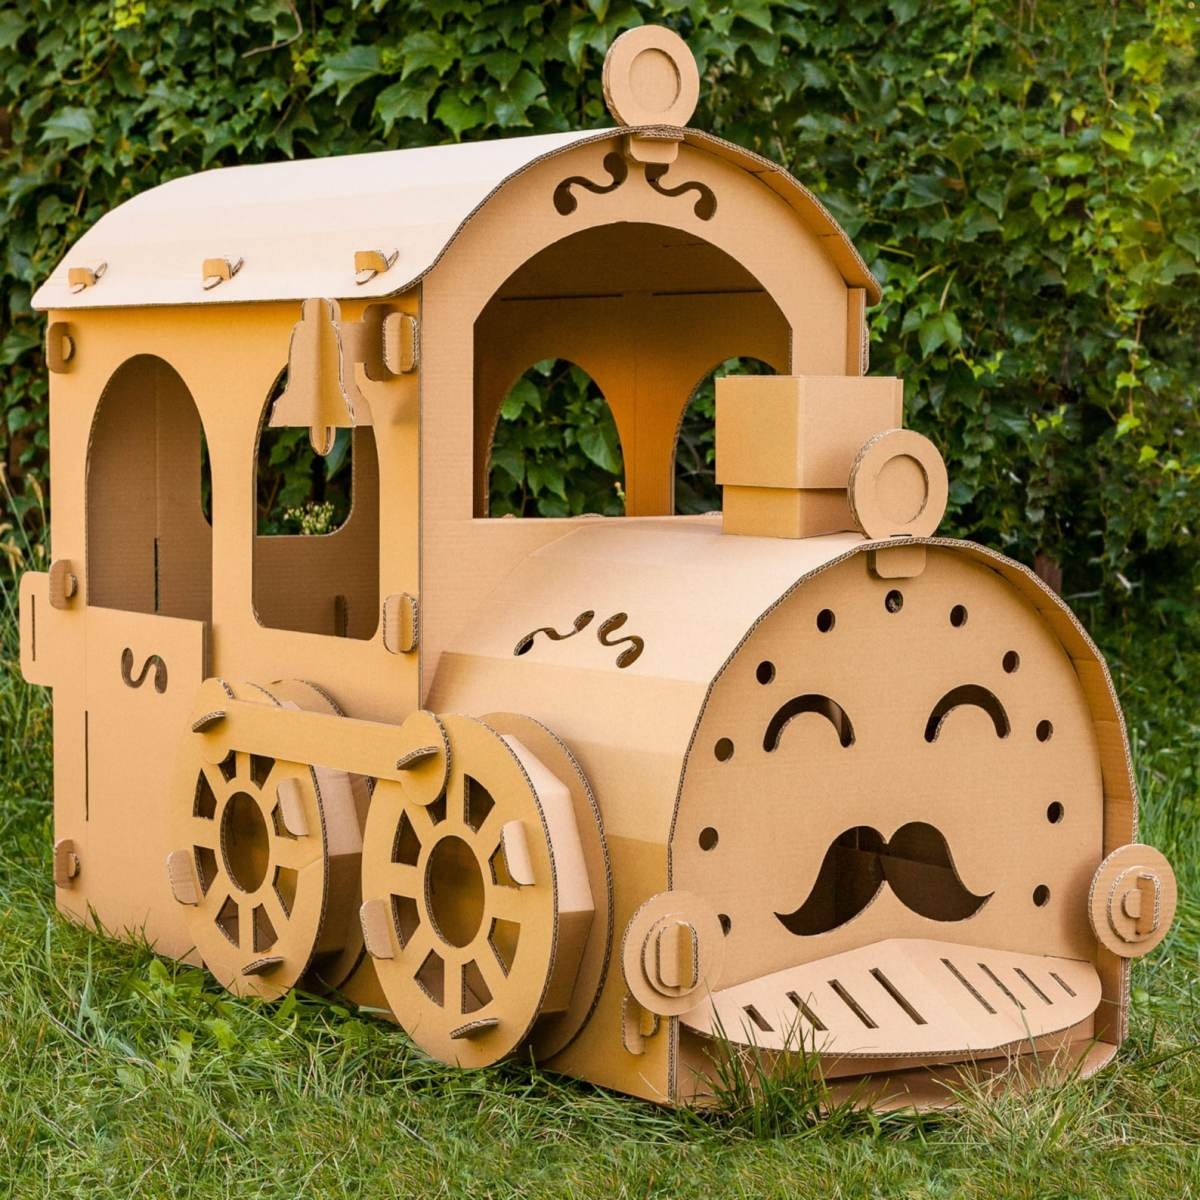 Train made from corrugated material